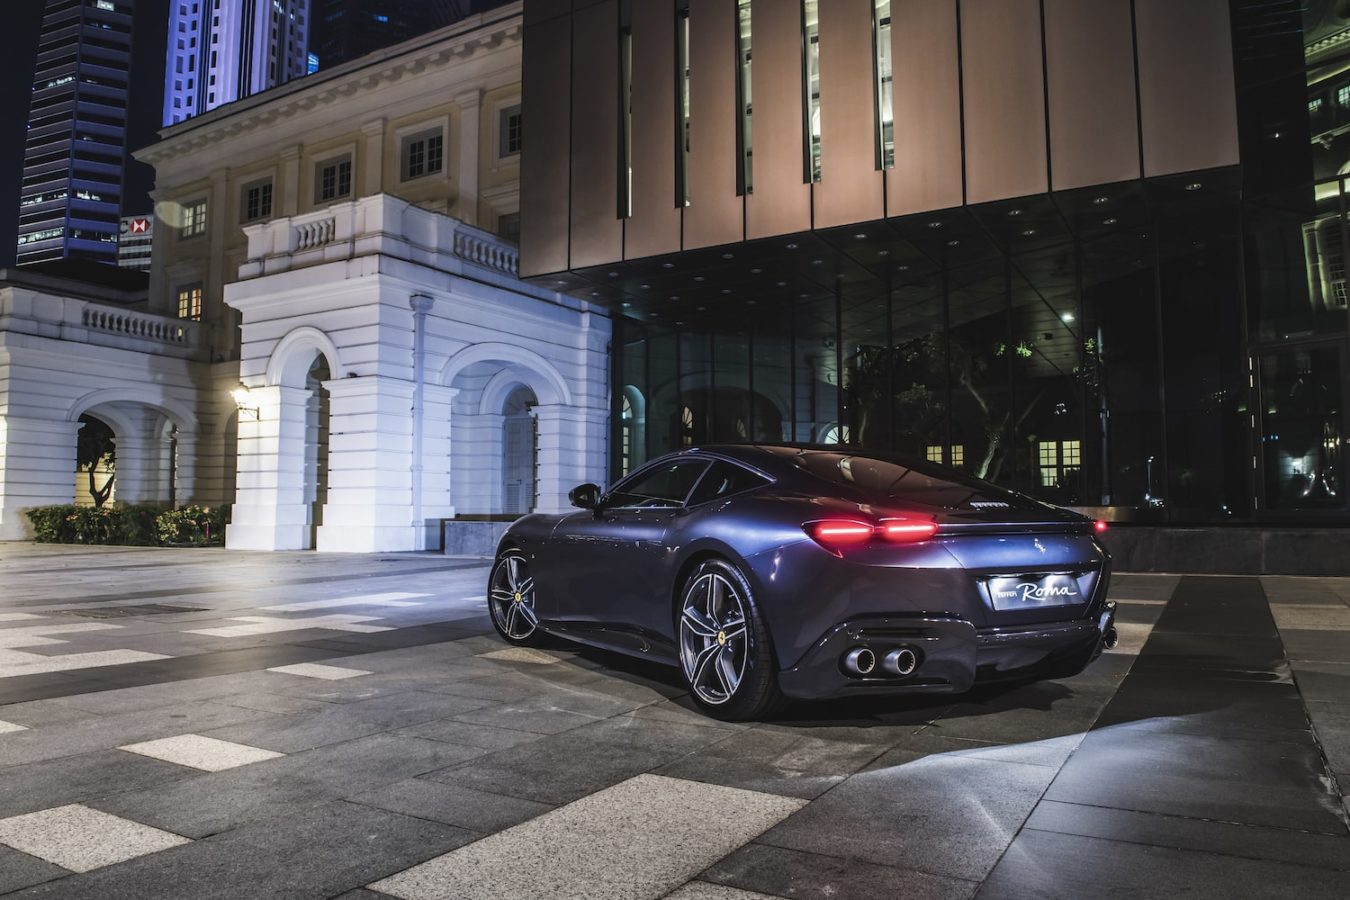 Ferrari Roma Review: The Perfect Supercar for Daily Use